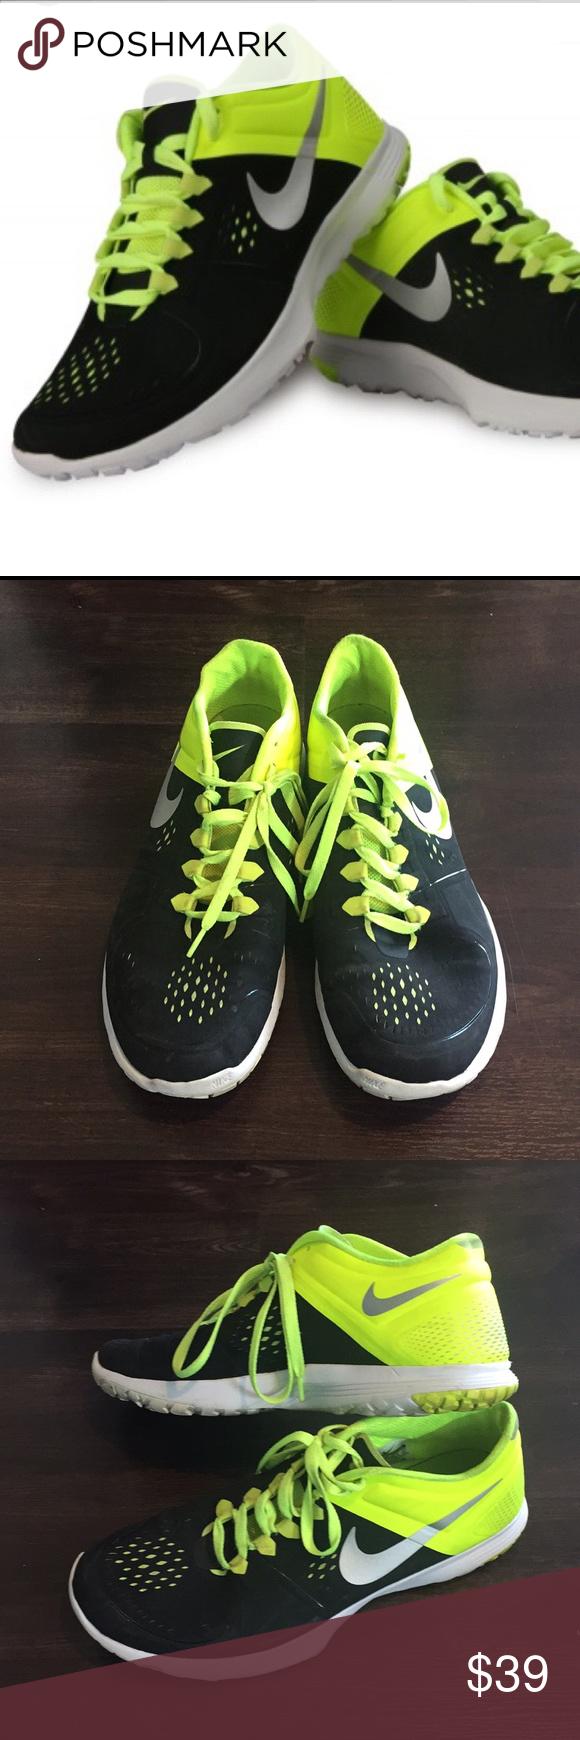 85bedc86d719 NIKE Men s Lite Training Running Shoes Great running shoe in EUC. Black lime  green  grey Nike Shoes Athletic Shoes